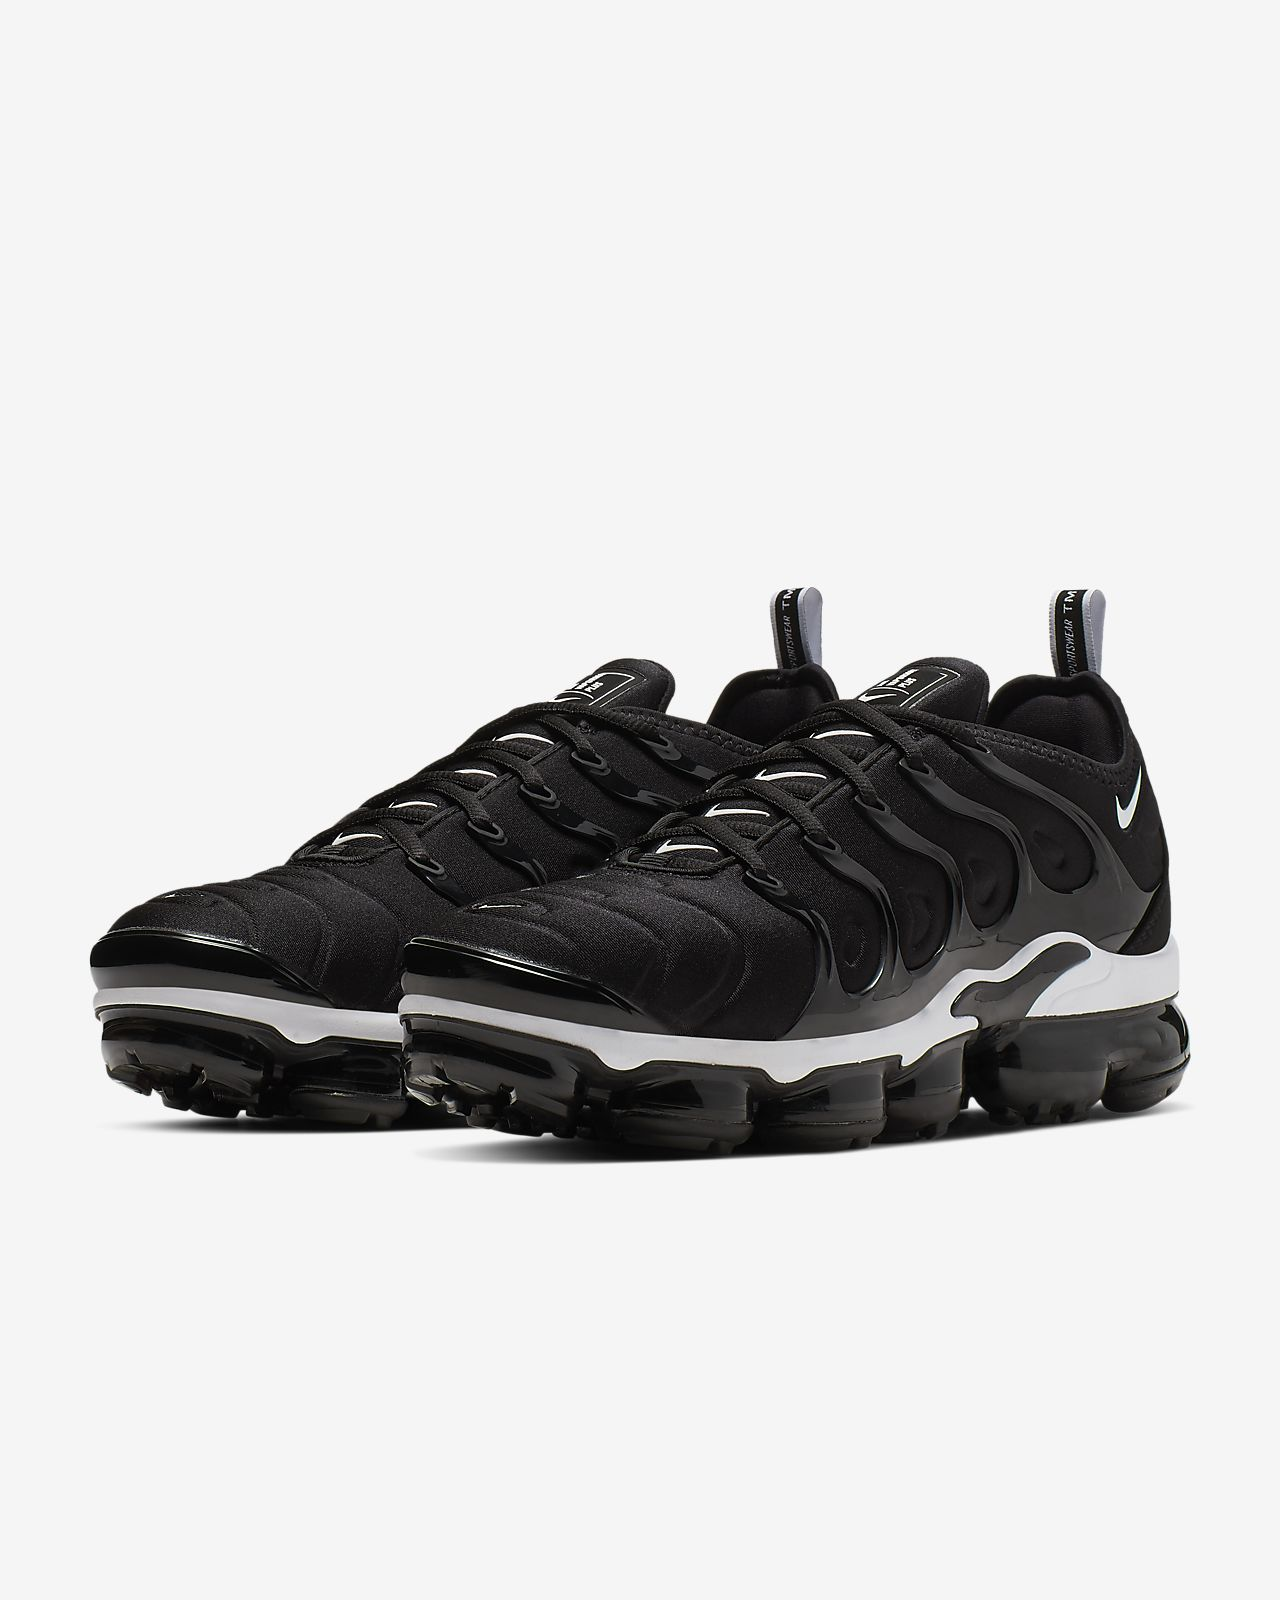 a1bb7d2a439 Nike Air VaporMax Plus Men s Shoe. Nike.com CA